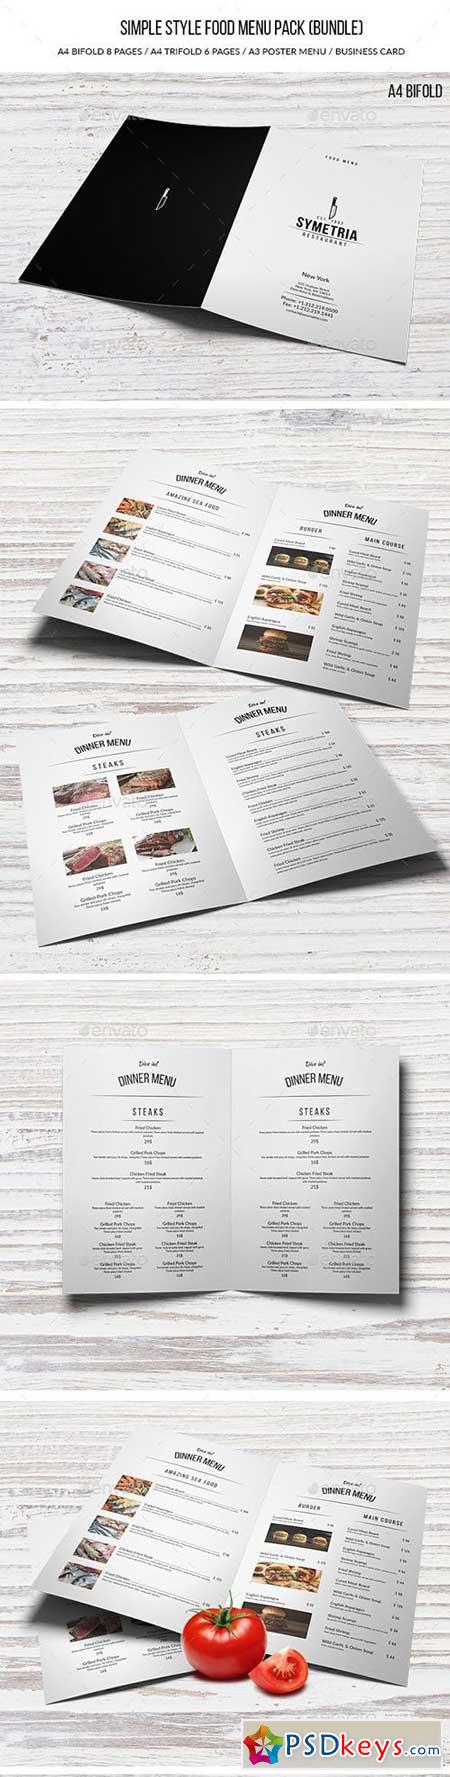 Simple Style Food Menu Pack (Bundle) 16529034